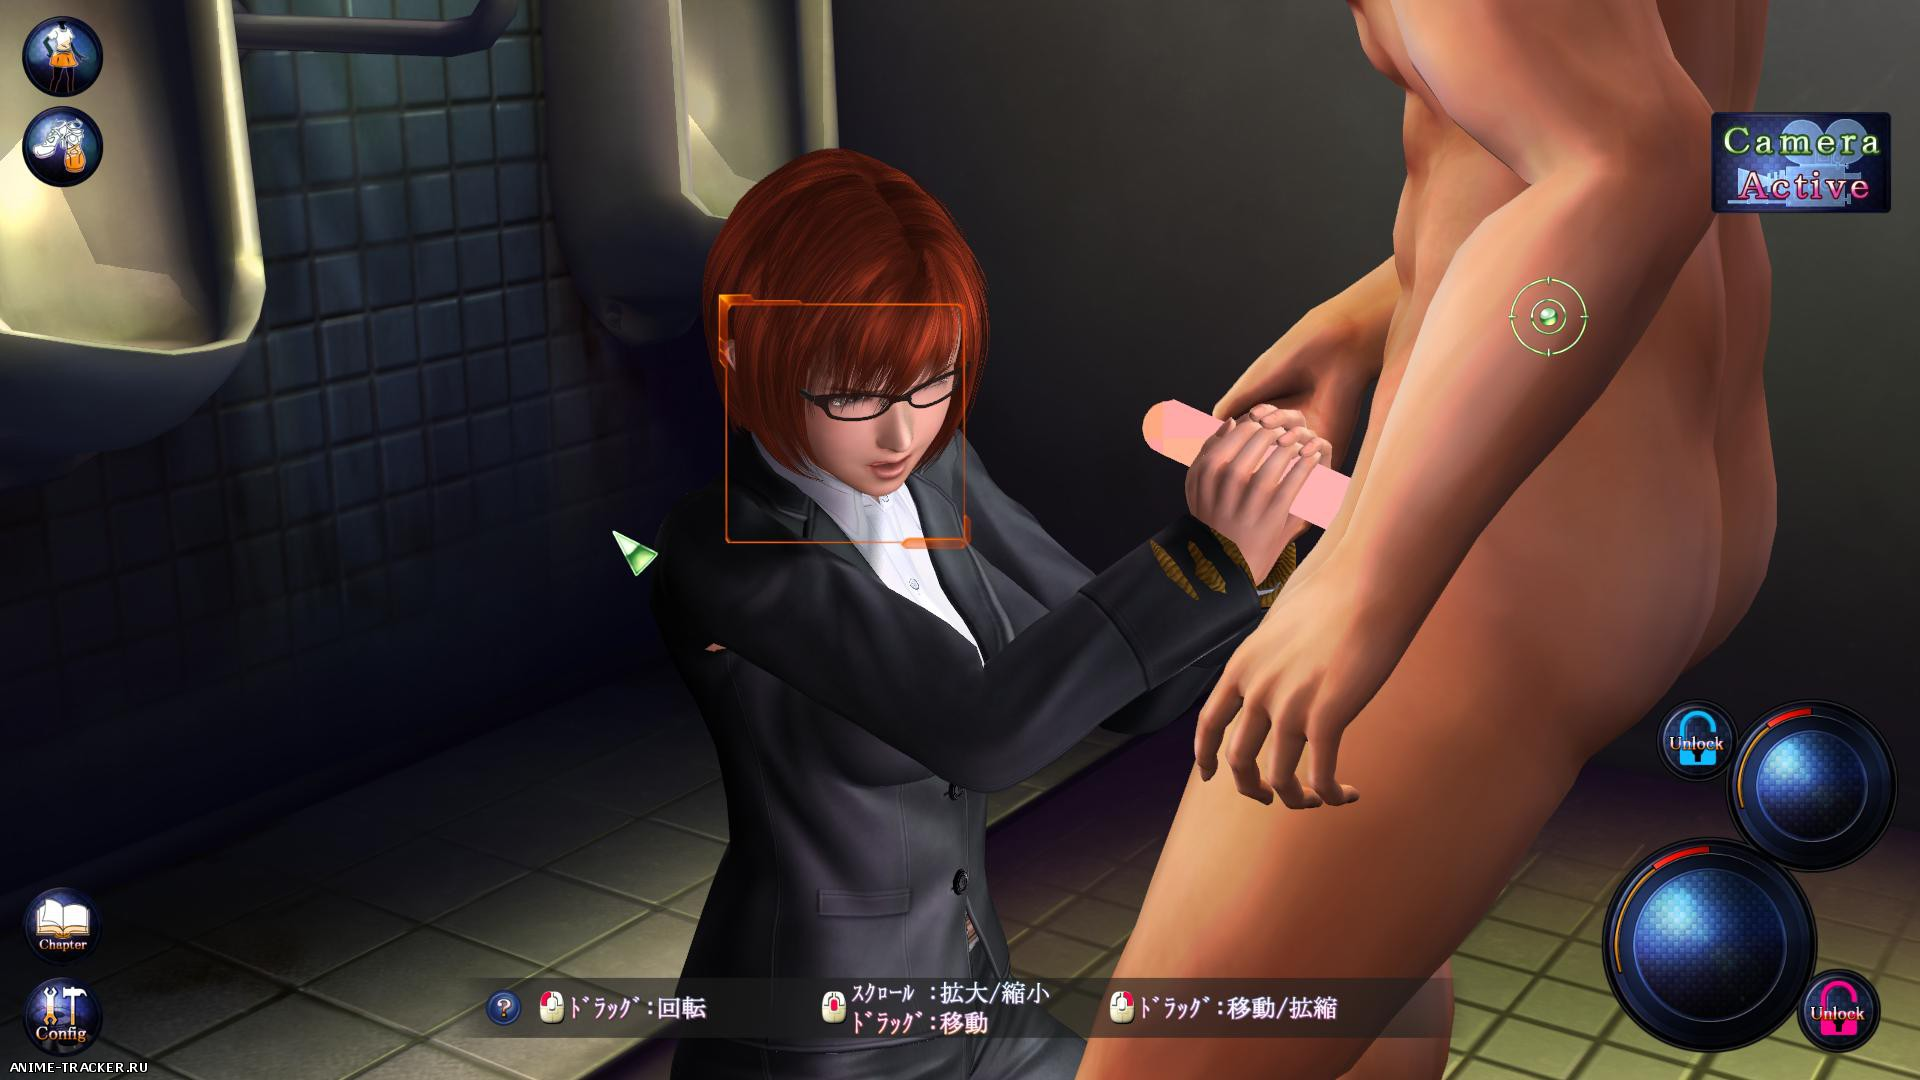 REAL PLAY / Реальные игры [2014] [Uncen] [Simulator,SLG,3D] [JAP,ENG,FRA,SPA] H-Game